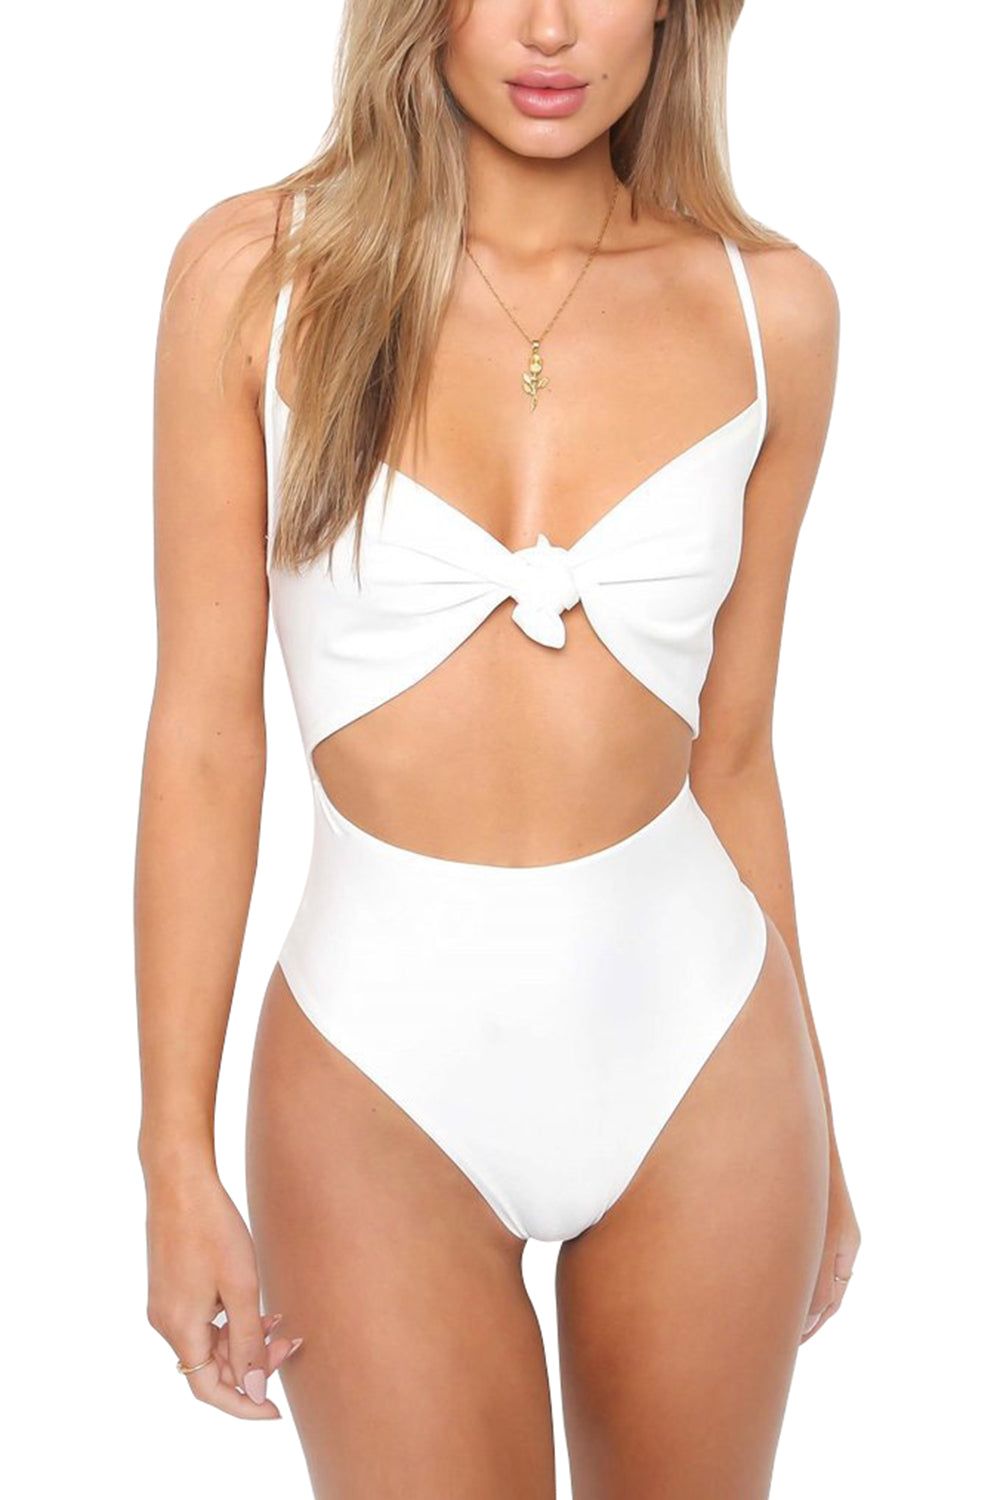 A| Chicloth Floral Print Halter Bandage One Piece-Chicloth